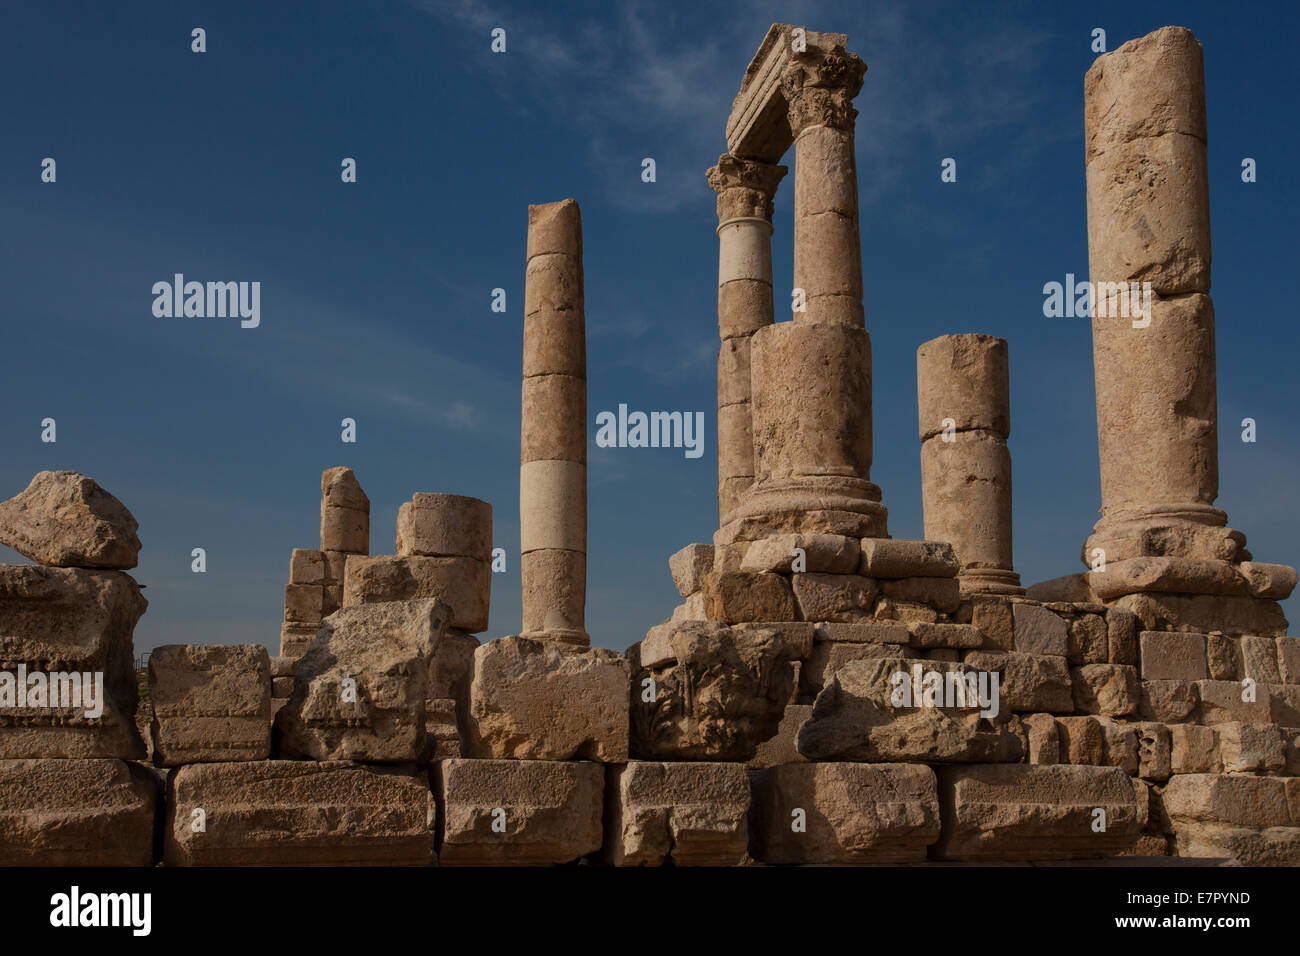 Ruins of the Citadel. Jebel al-Qalaa, Qala hill, columns of the roman Hercules temple in Amman Jordan Stock Photo